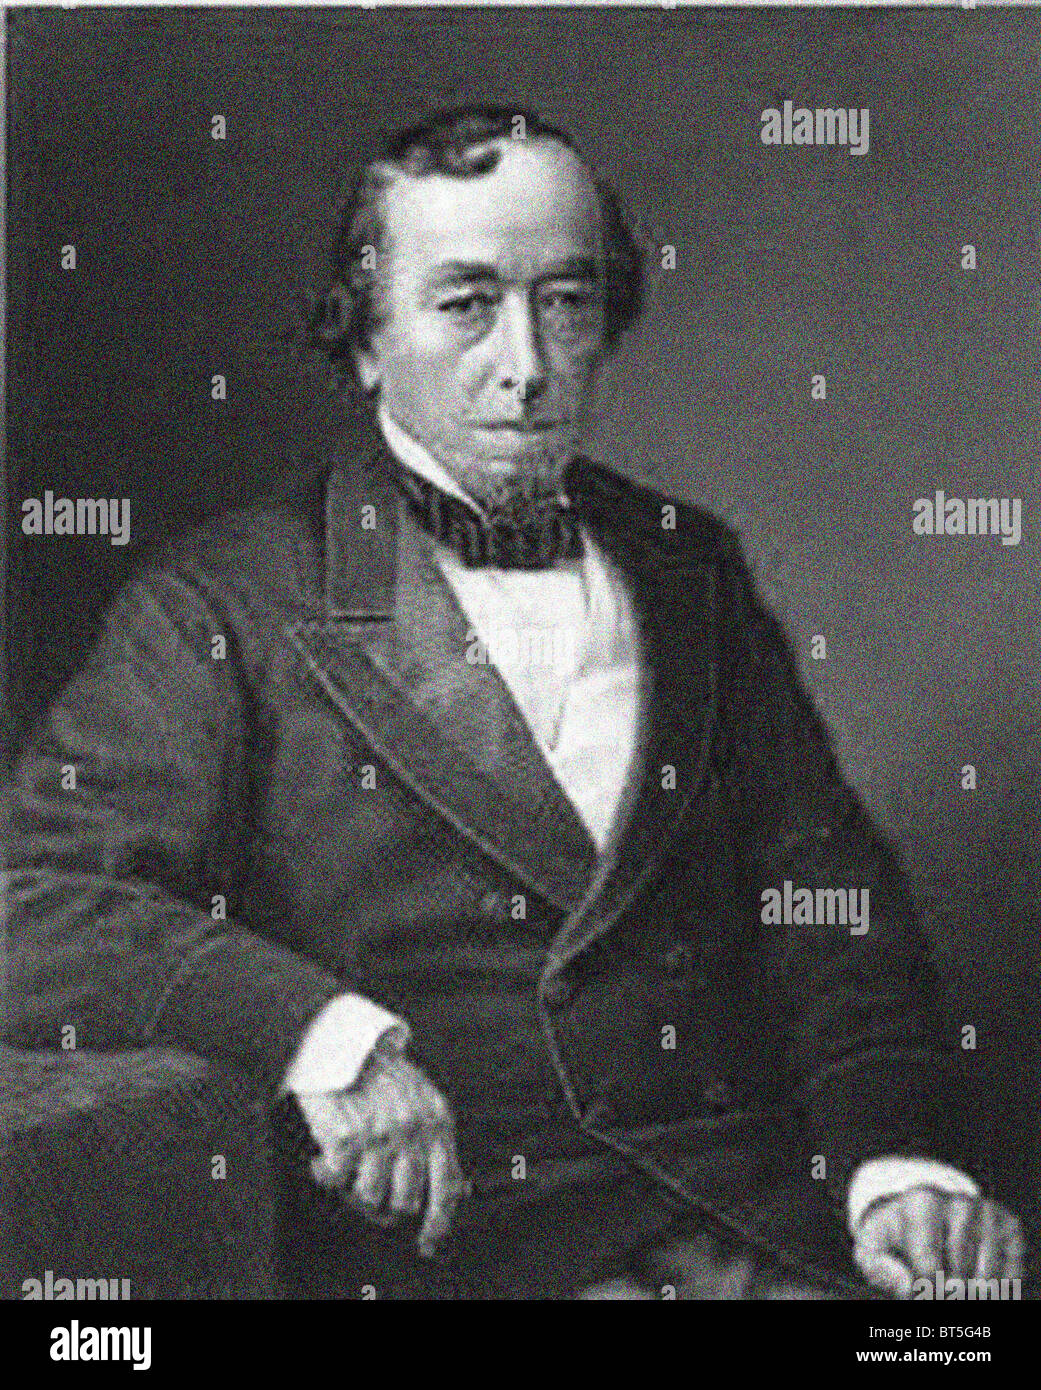 Benjamin Disraeli, 1st Earl of Beaconsfield, KG, PC, FRS, (21 December 1804 – 19 April 1881) was a British Prime Minister. From the archives of Press Portrait Service (formerly Press Portrait Bureau) Stock Photo